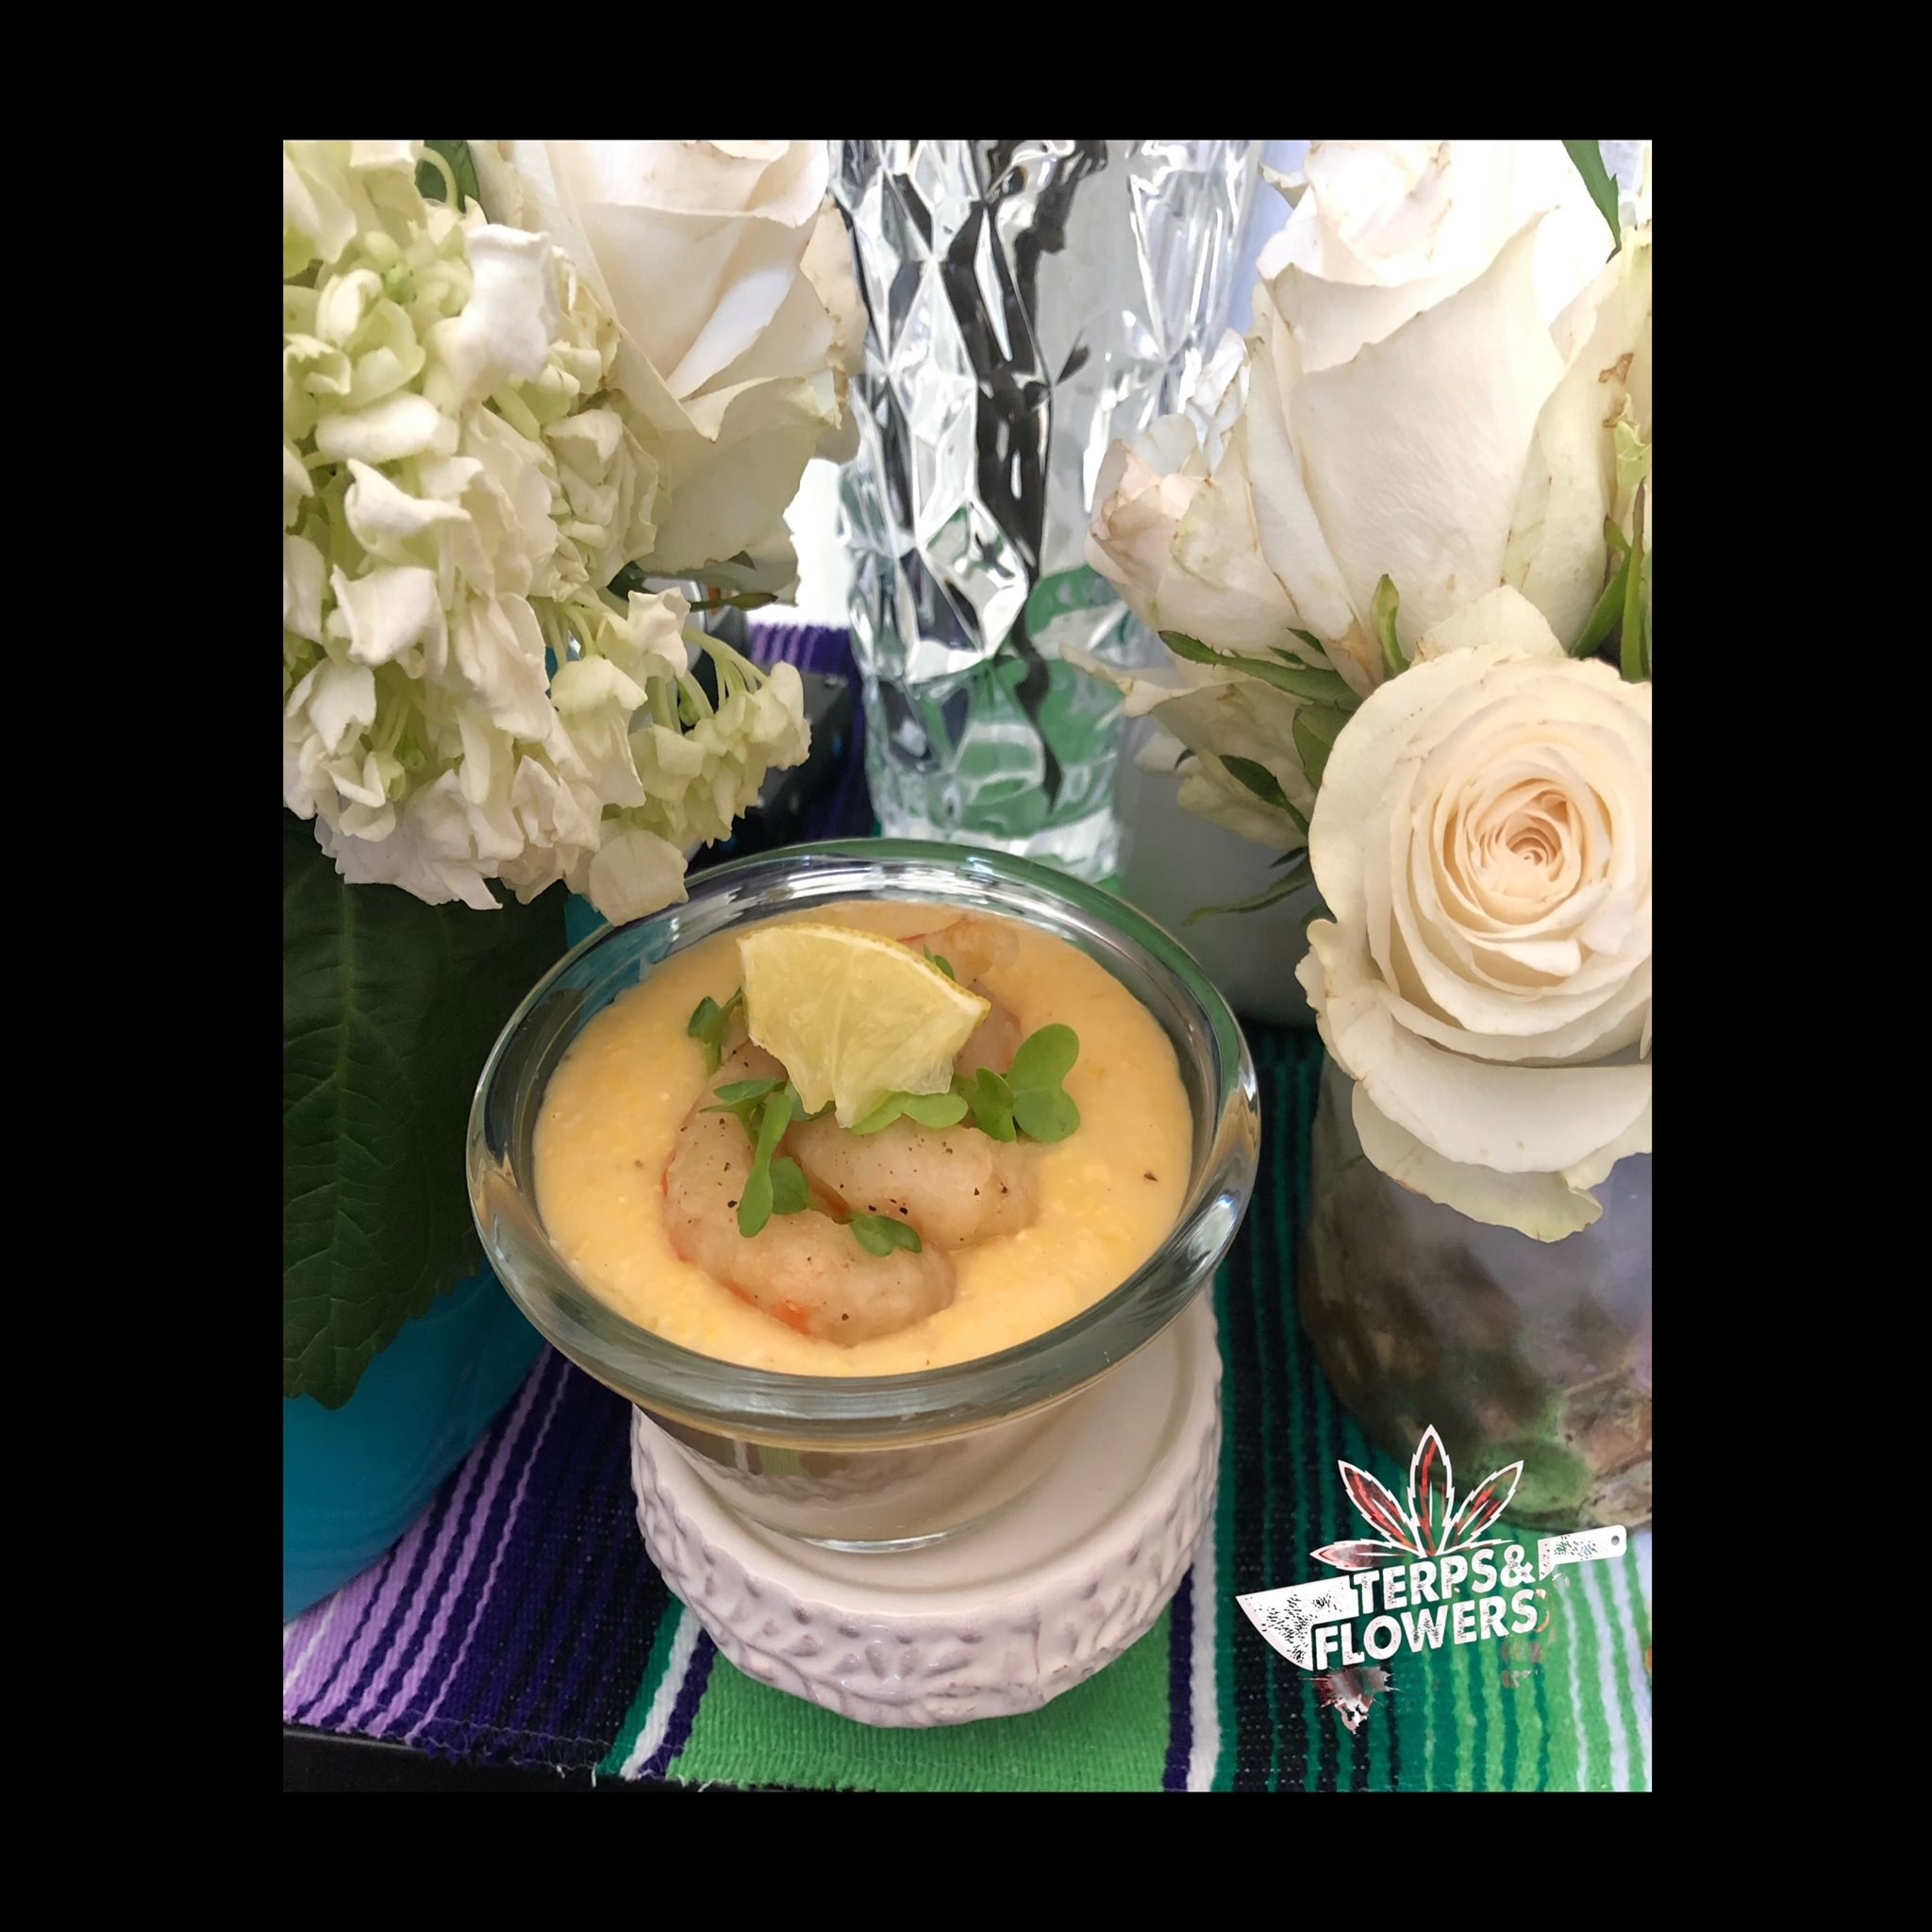 Vegan shrimp and grits from Terps & Flowers Catering